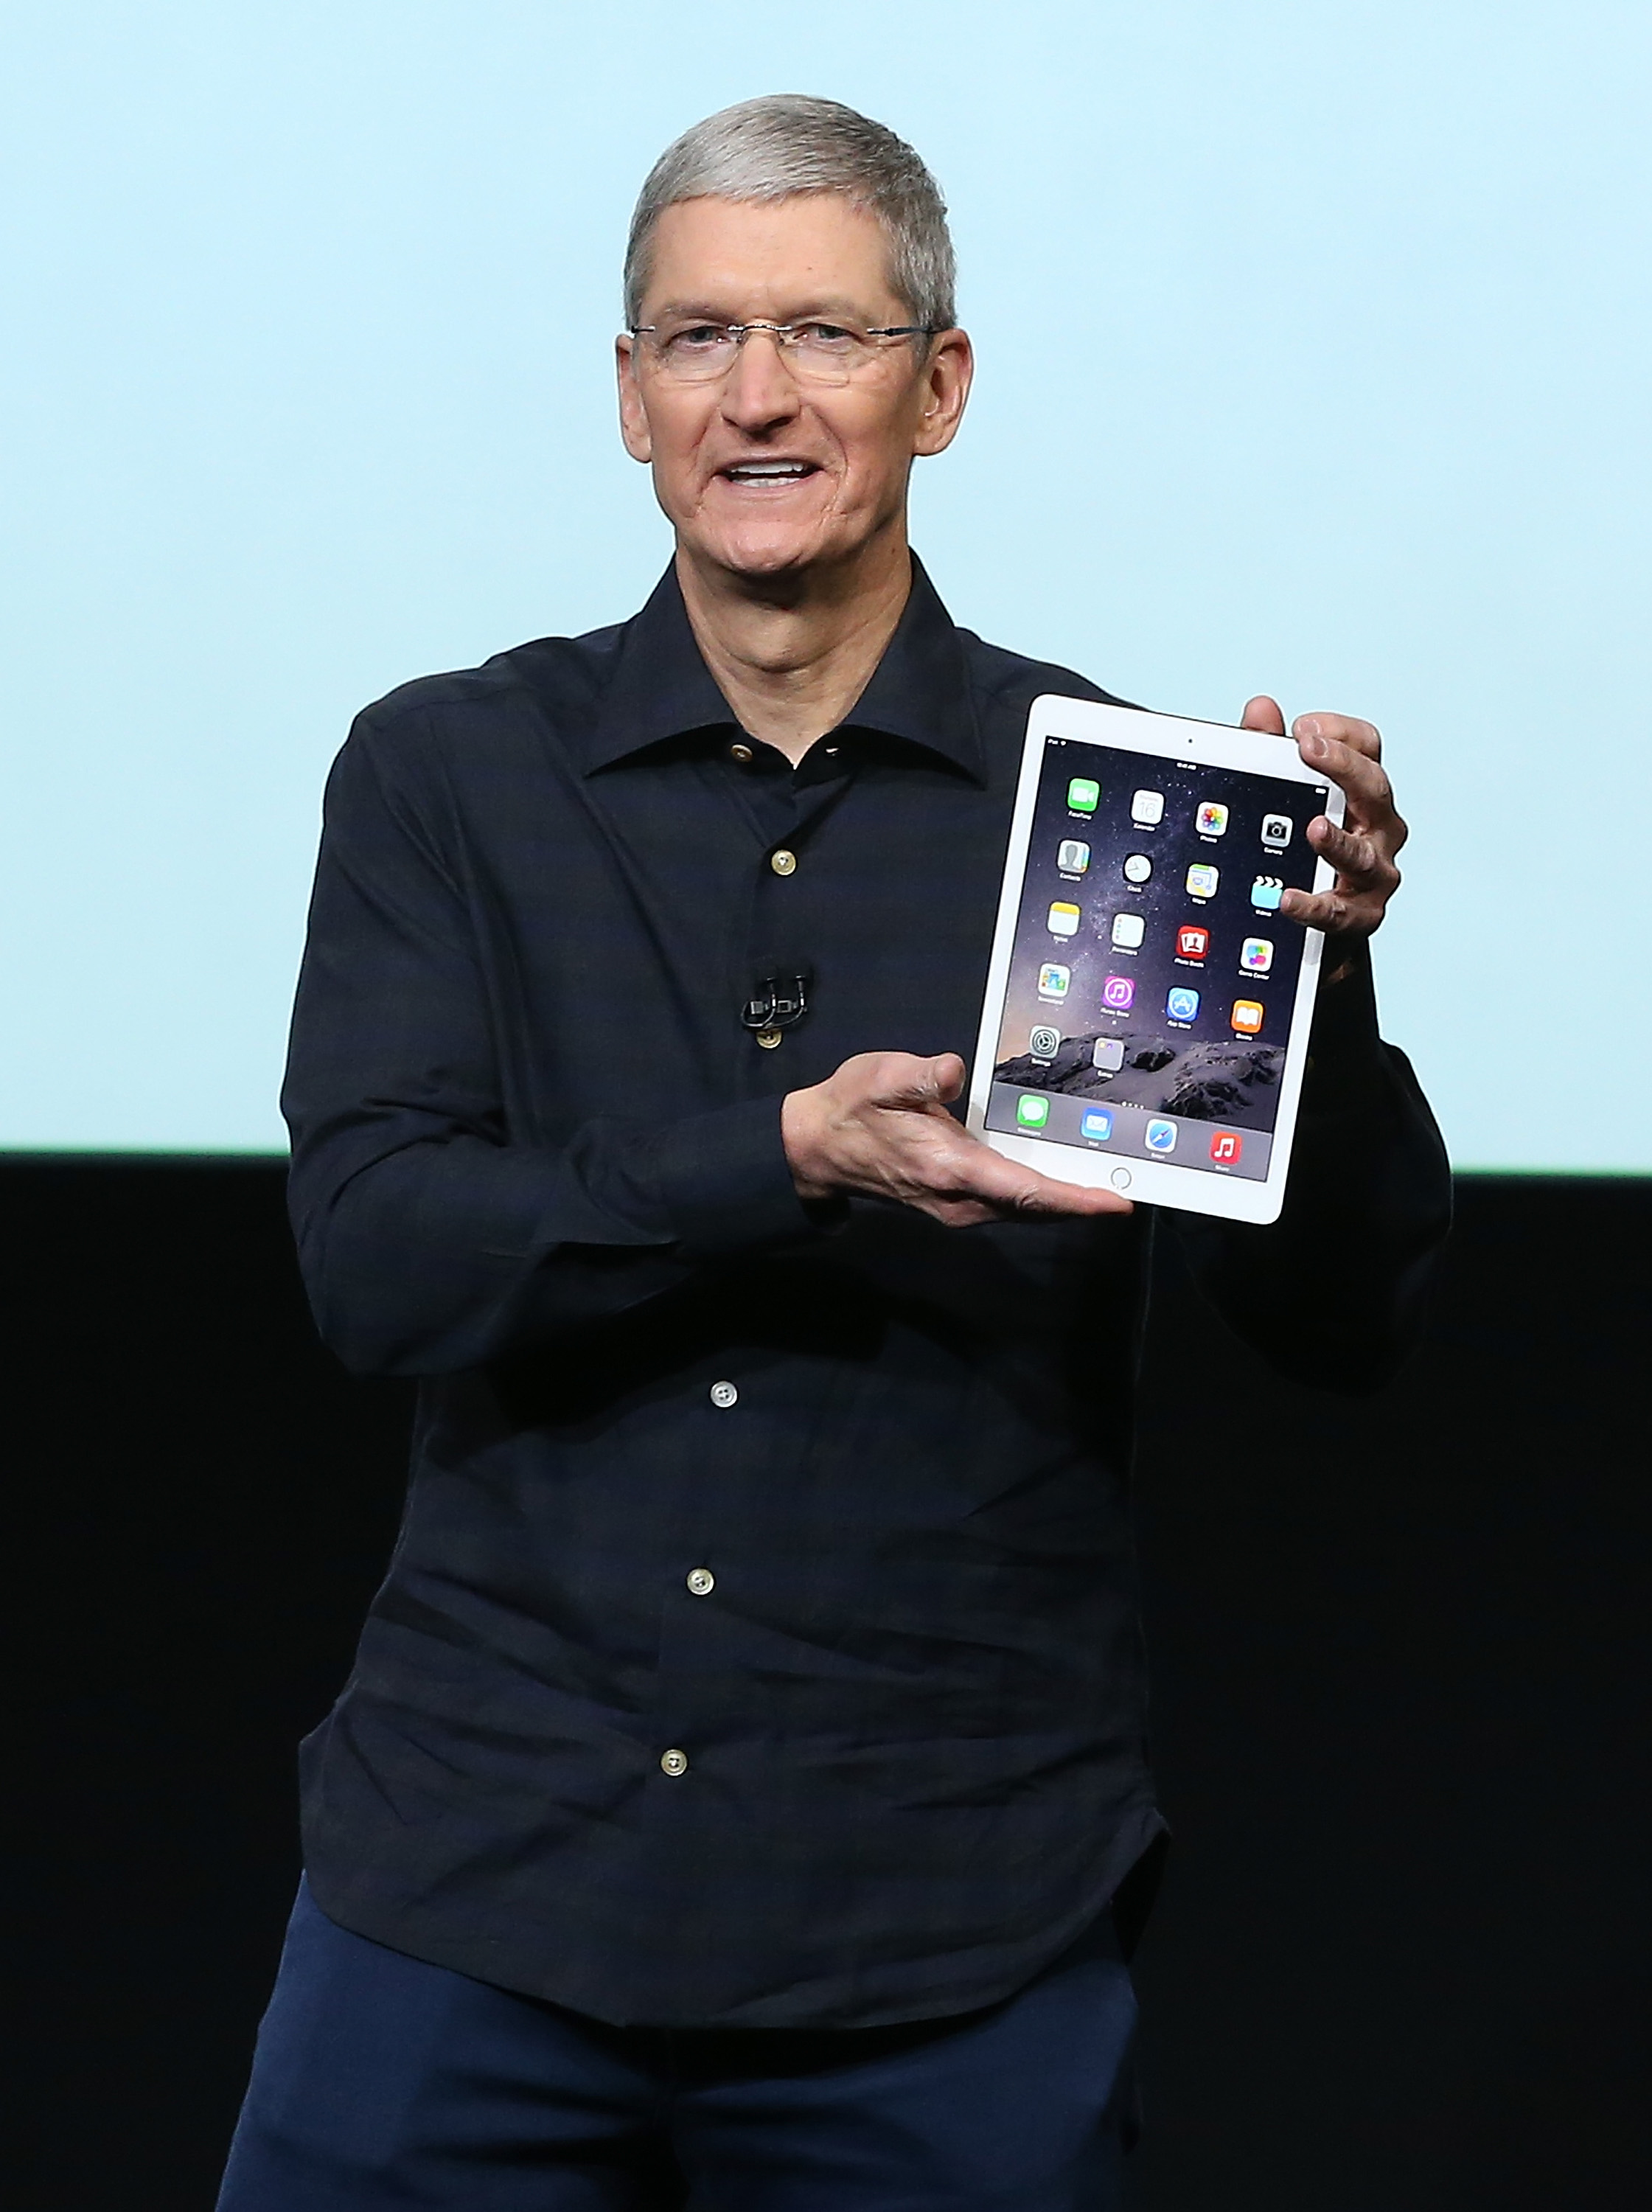 Apple CEO Tim Cook holds the new iPad Air 2 during a special event on Oct. 16, 2014 in Cupertino, Calif.